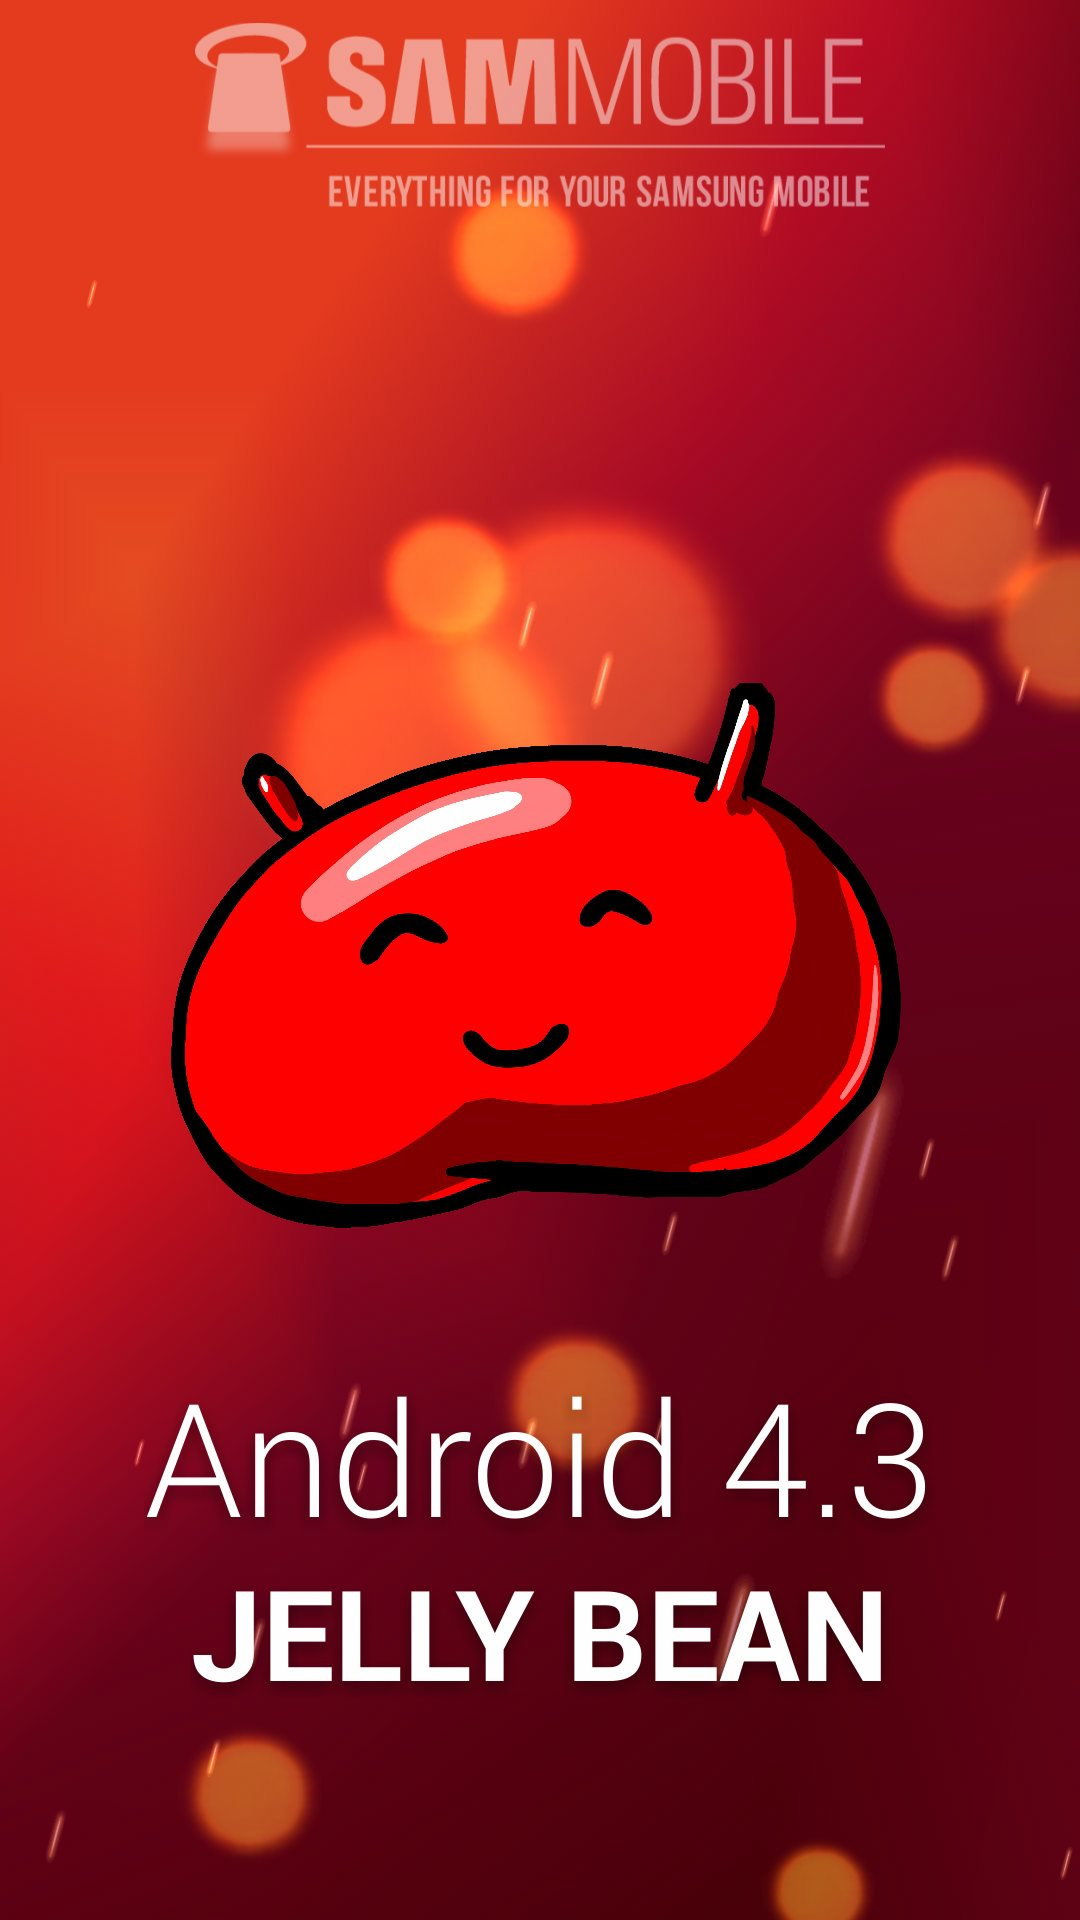 Android 4.3 Jelly Bean pantallas ROM filtrado